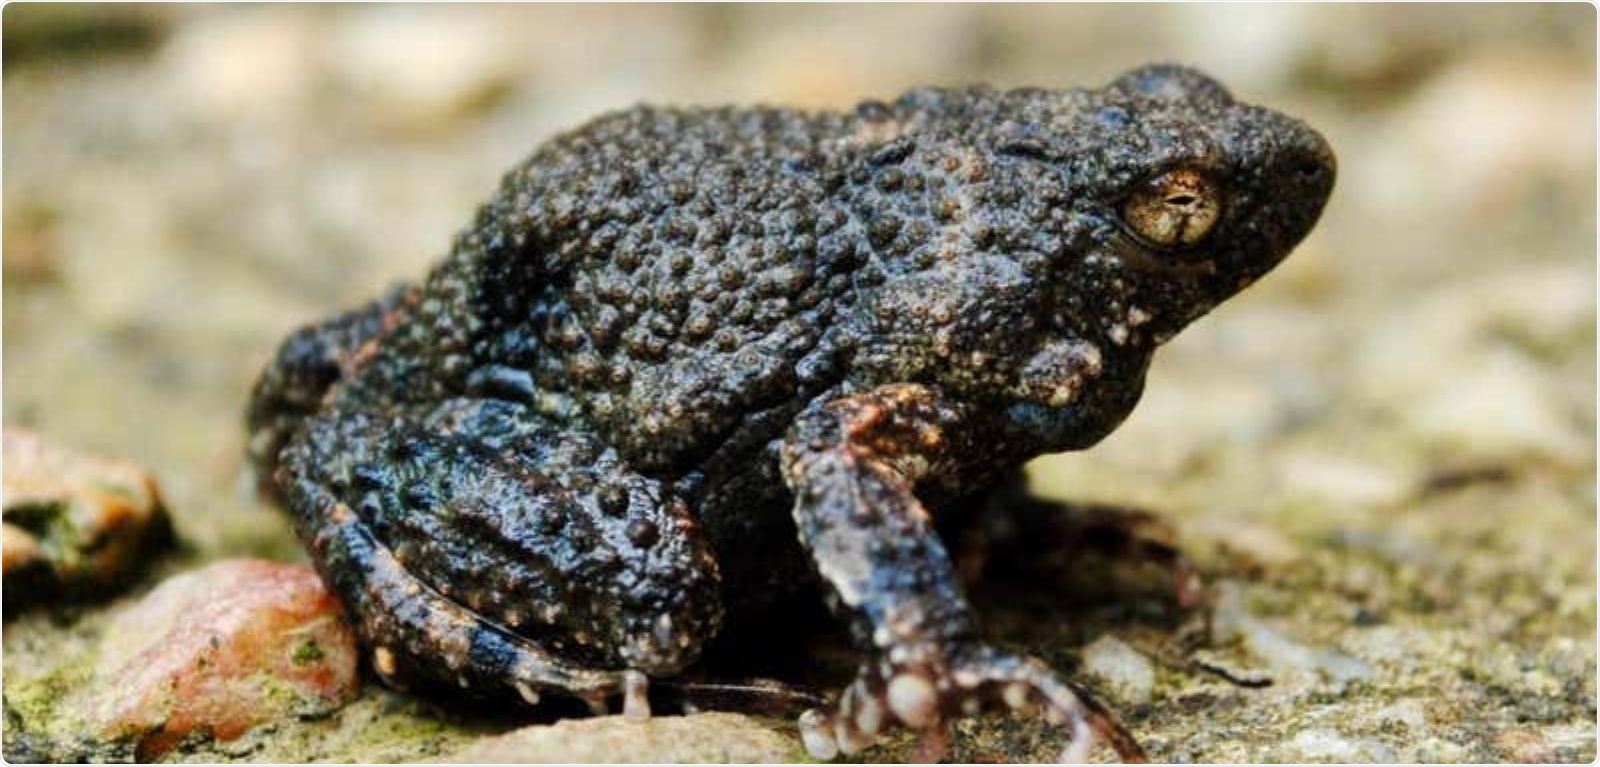 Researchers use amphibian foam to deliver drugs for the first time